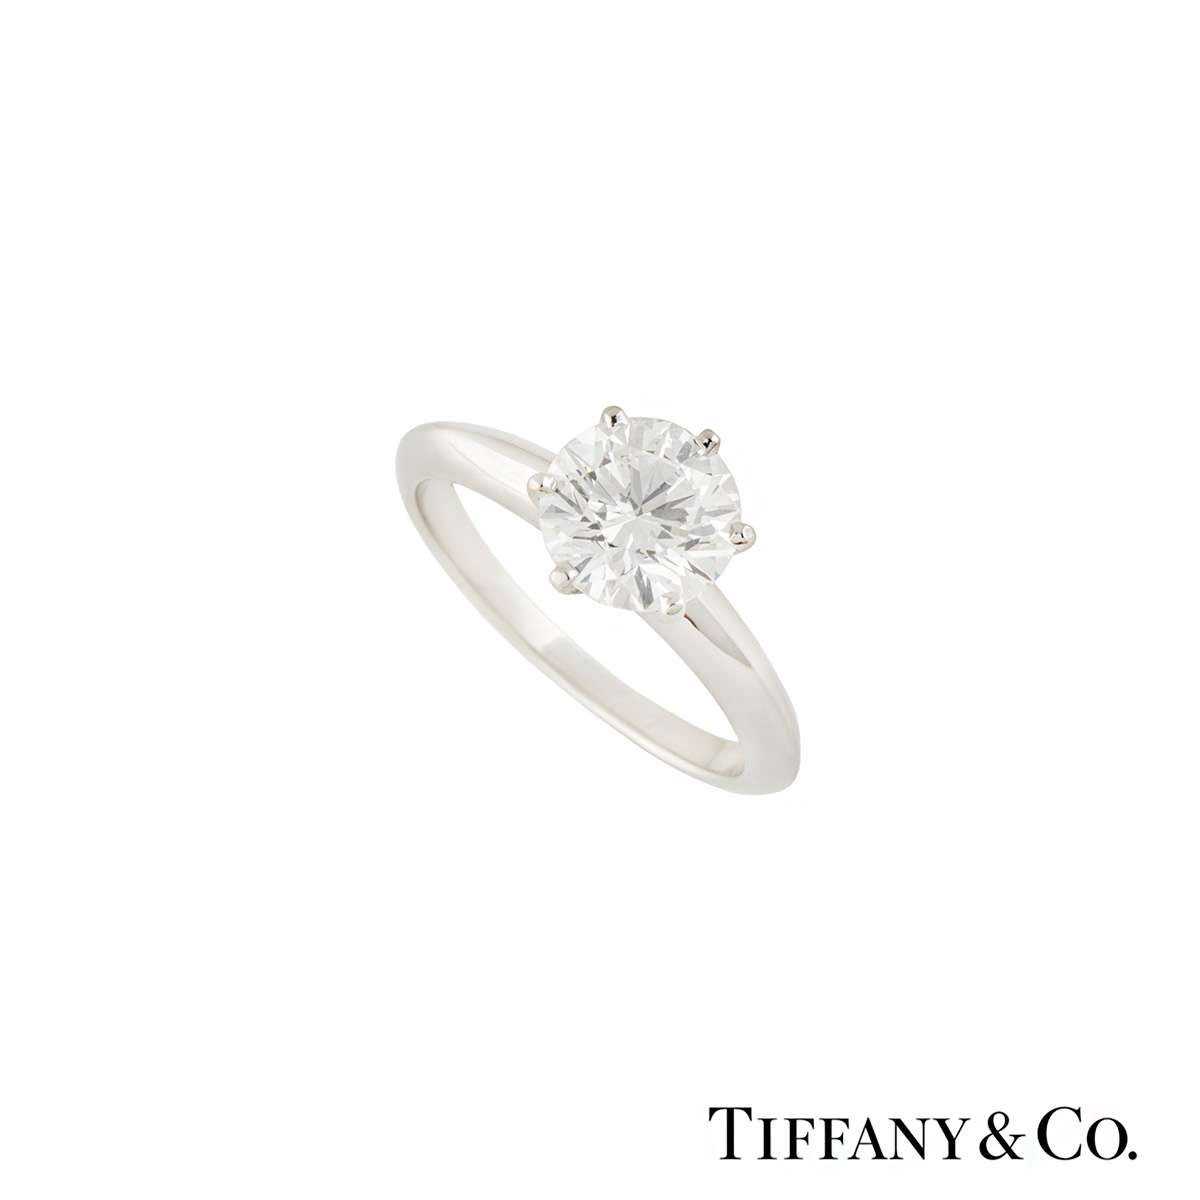 Tiffany & Co. Platinum Setting Band Diamond Ring 1.50ct H/VVS2